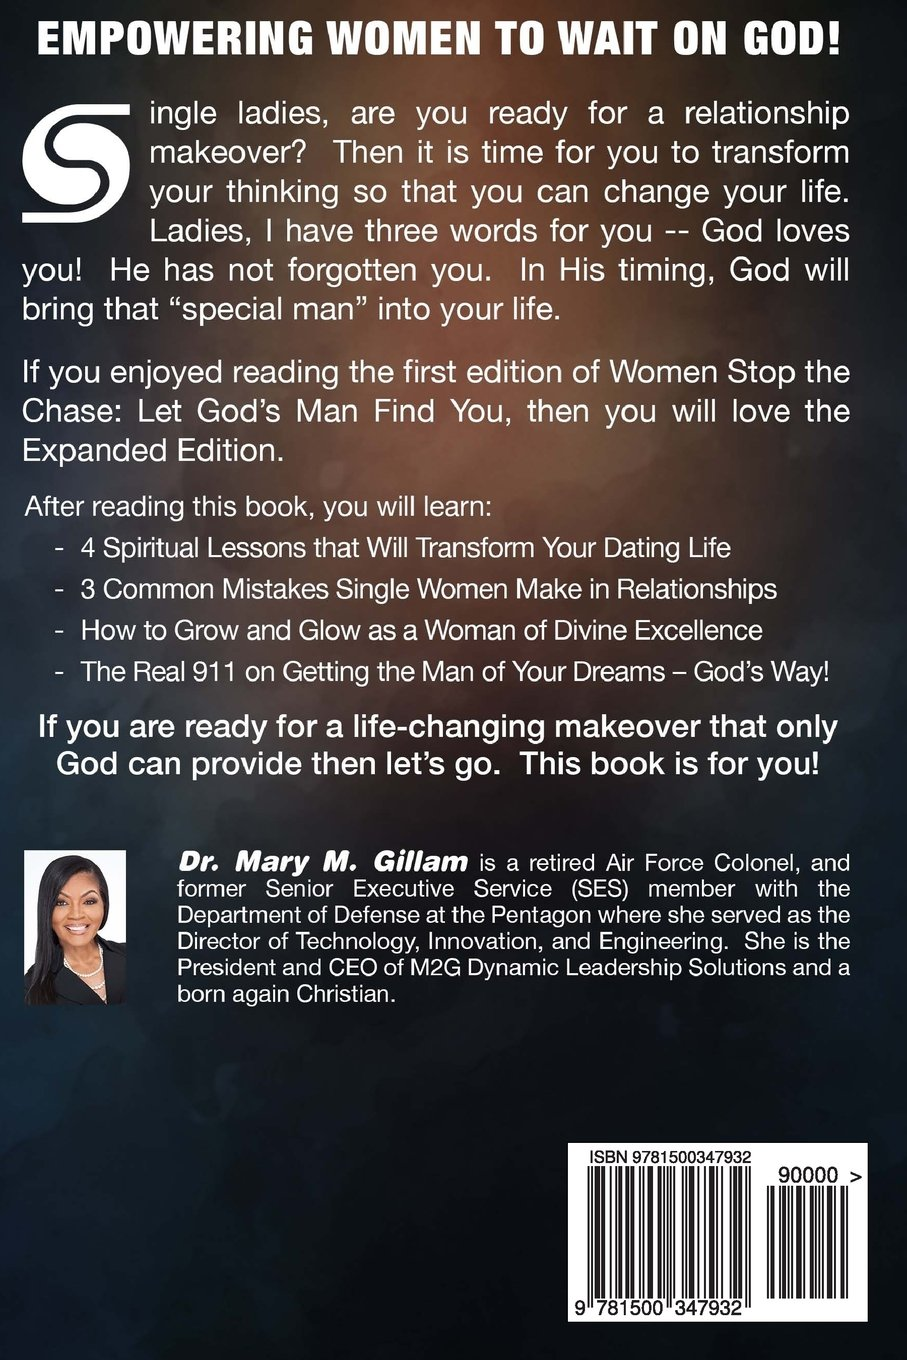 Women Stop the Chase: Let God's Man Find You Expanded